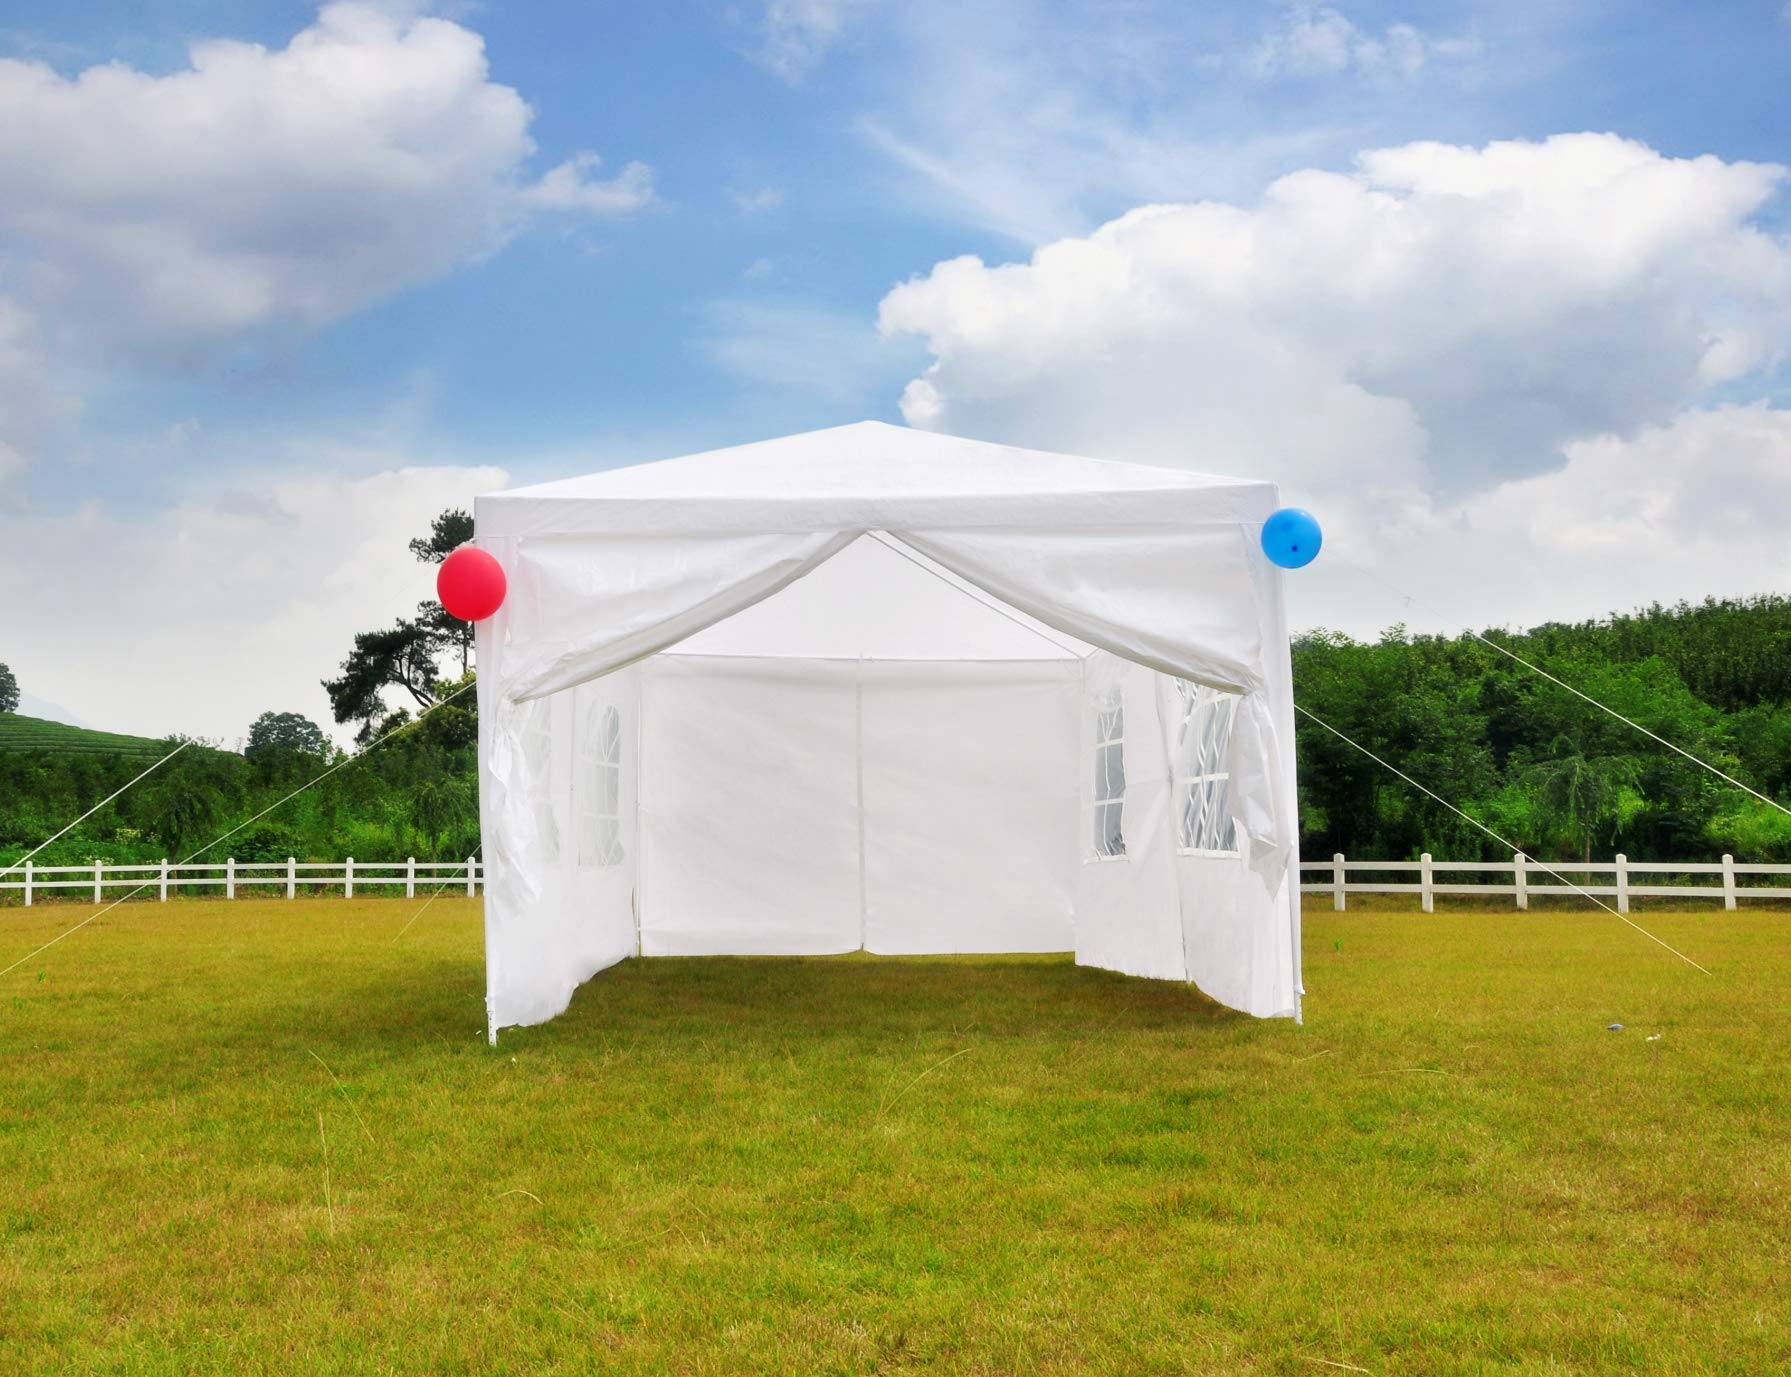 GOJOOASIS 10x20 Outdoor Gazebo Wedding Party Tent w/ 6 Removable Walls by GOJOOASIS (Image #5)